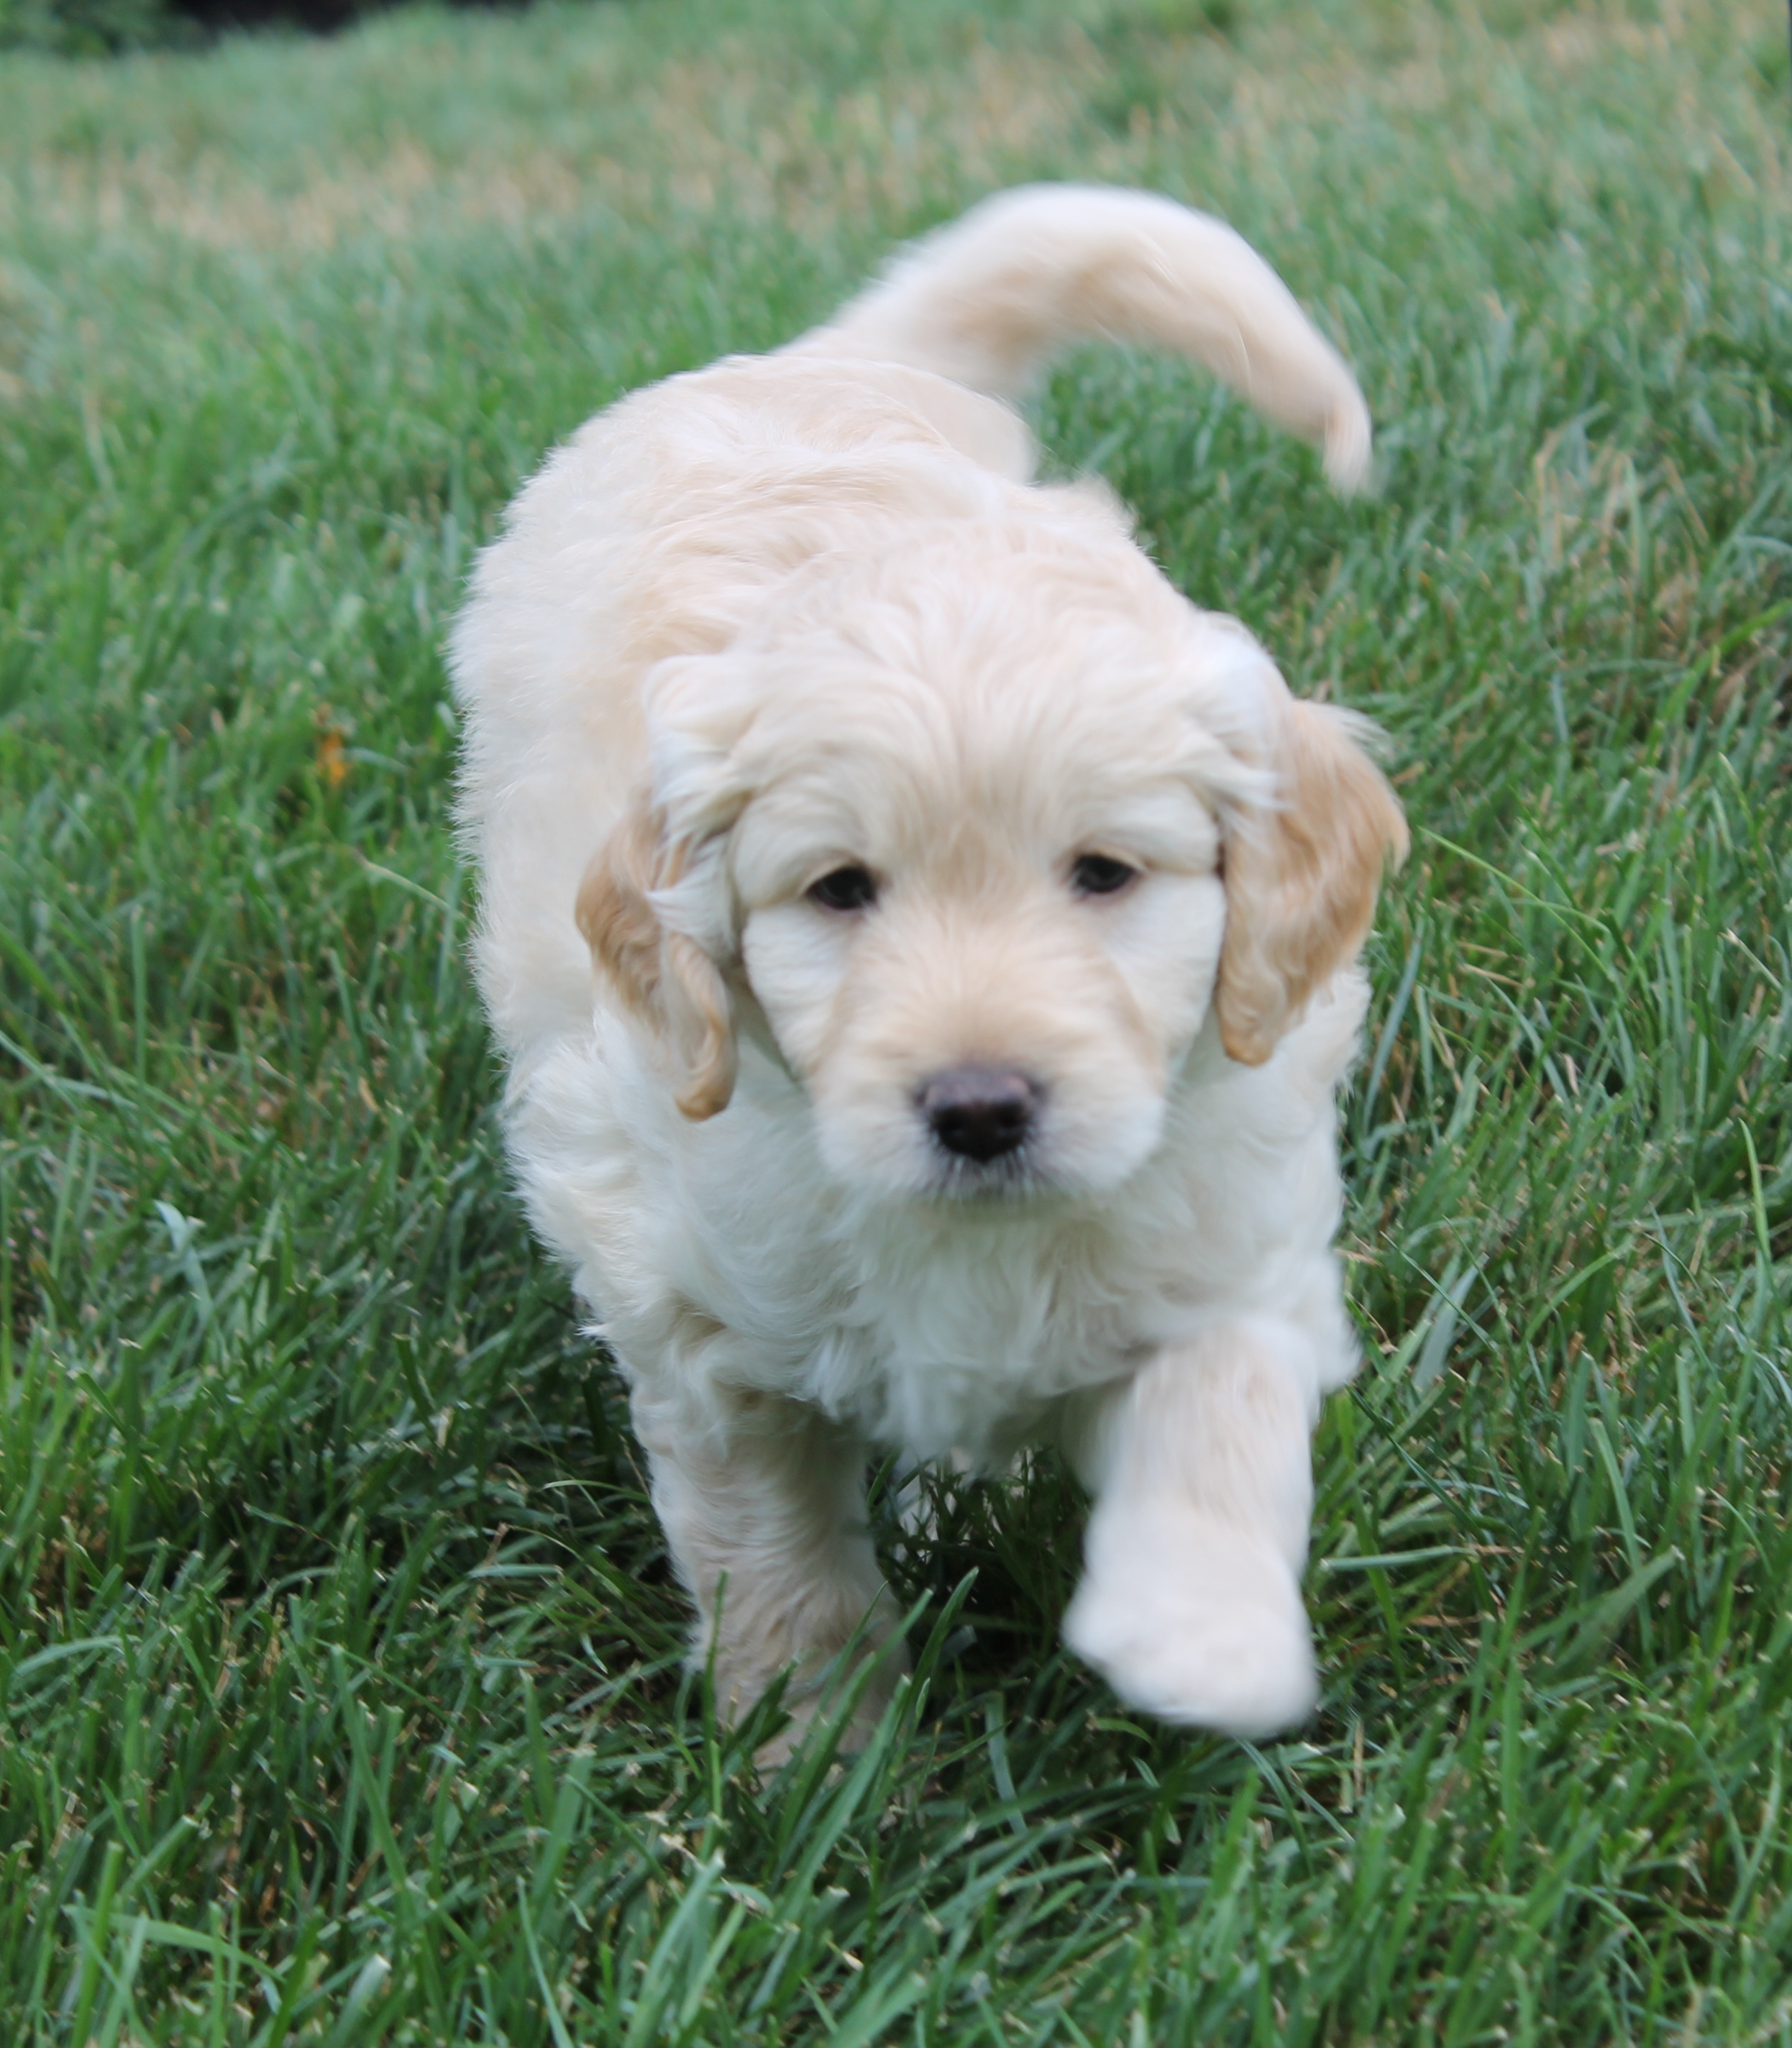 Double Doodle Puppies for Sale - Double Doodle Puppies